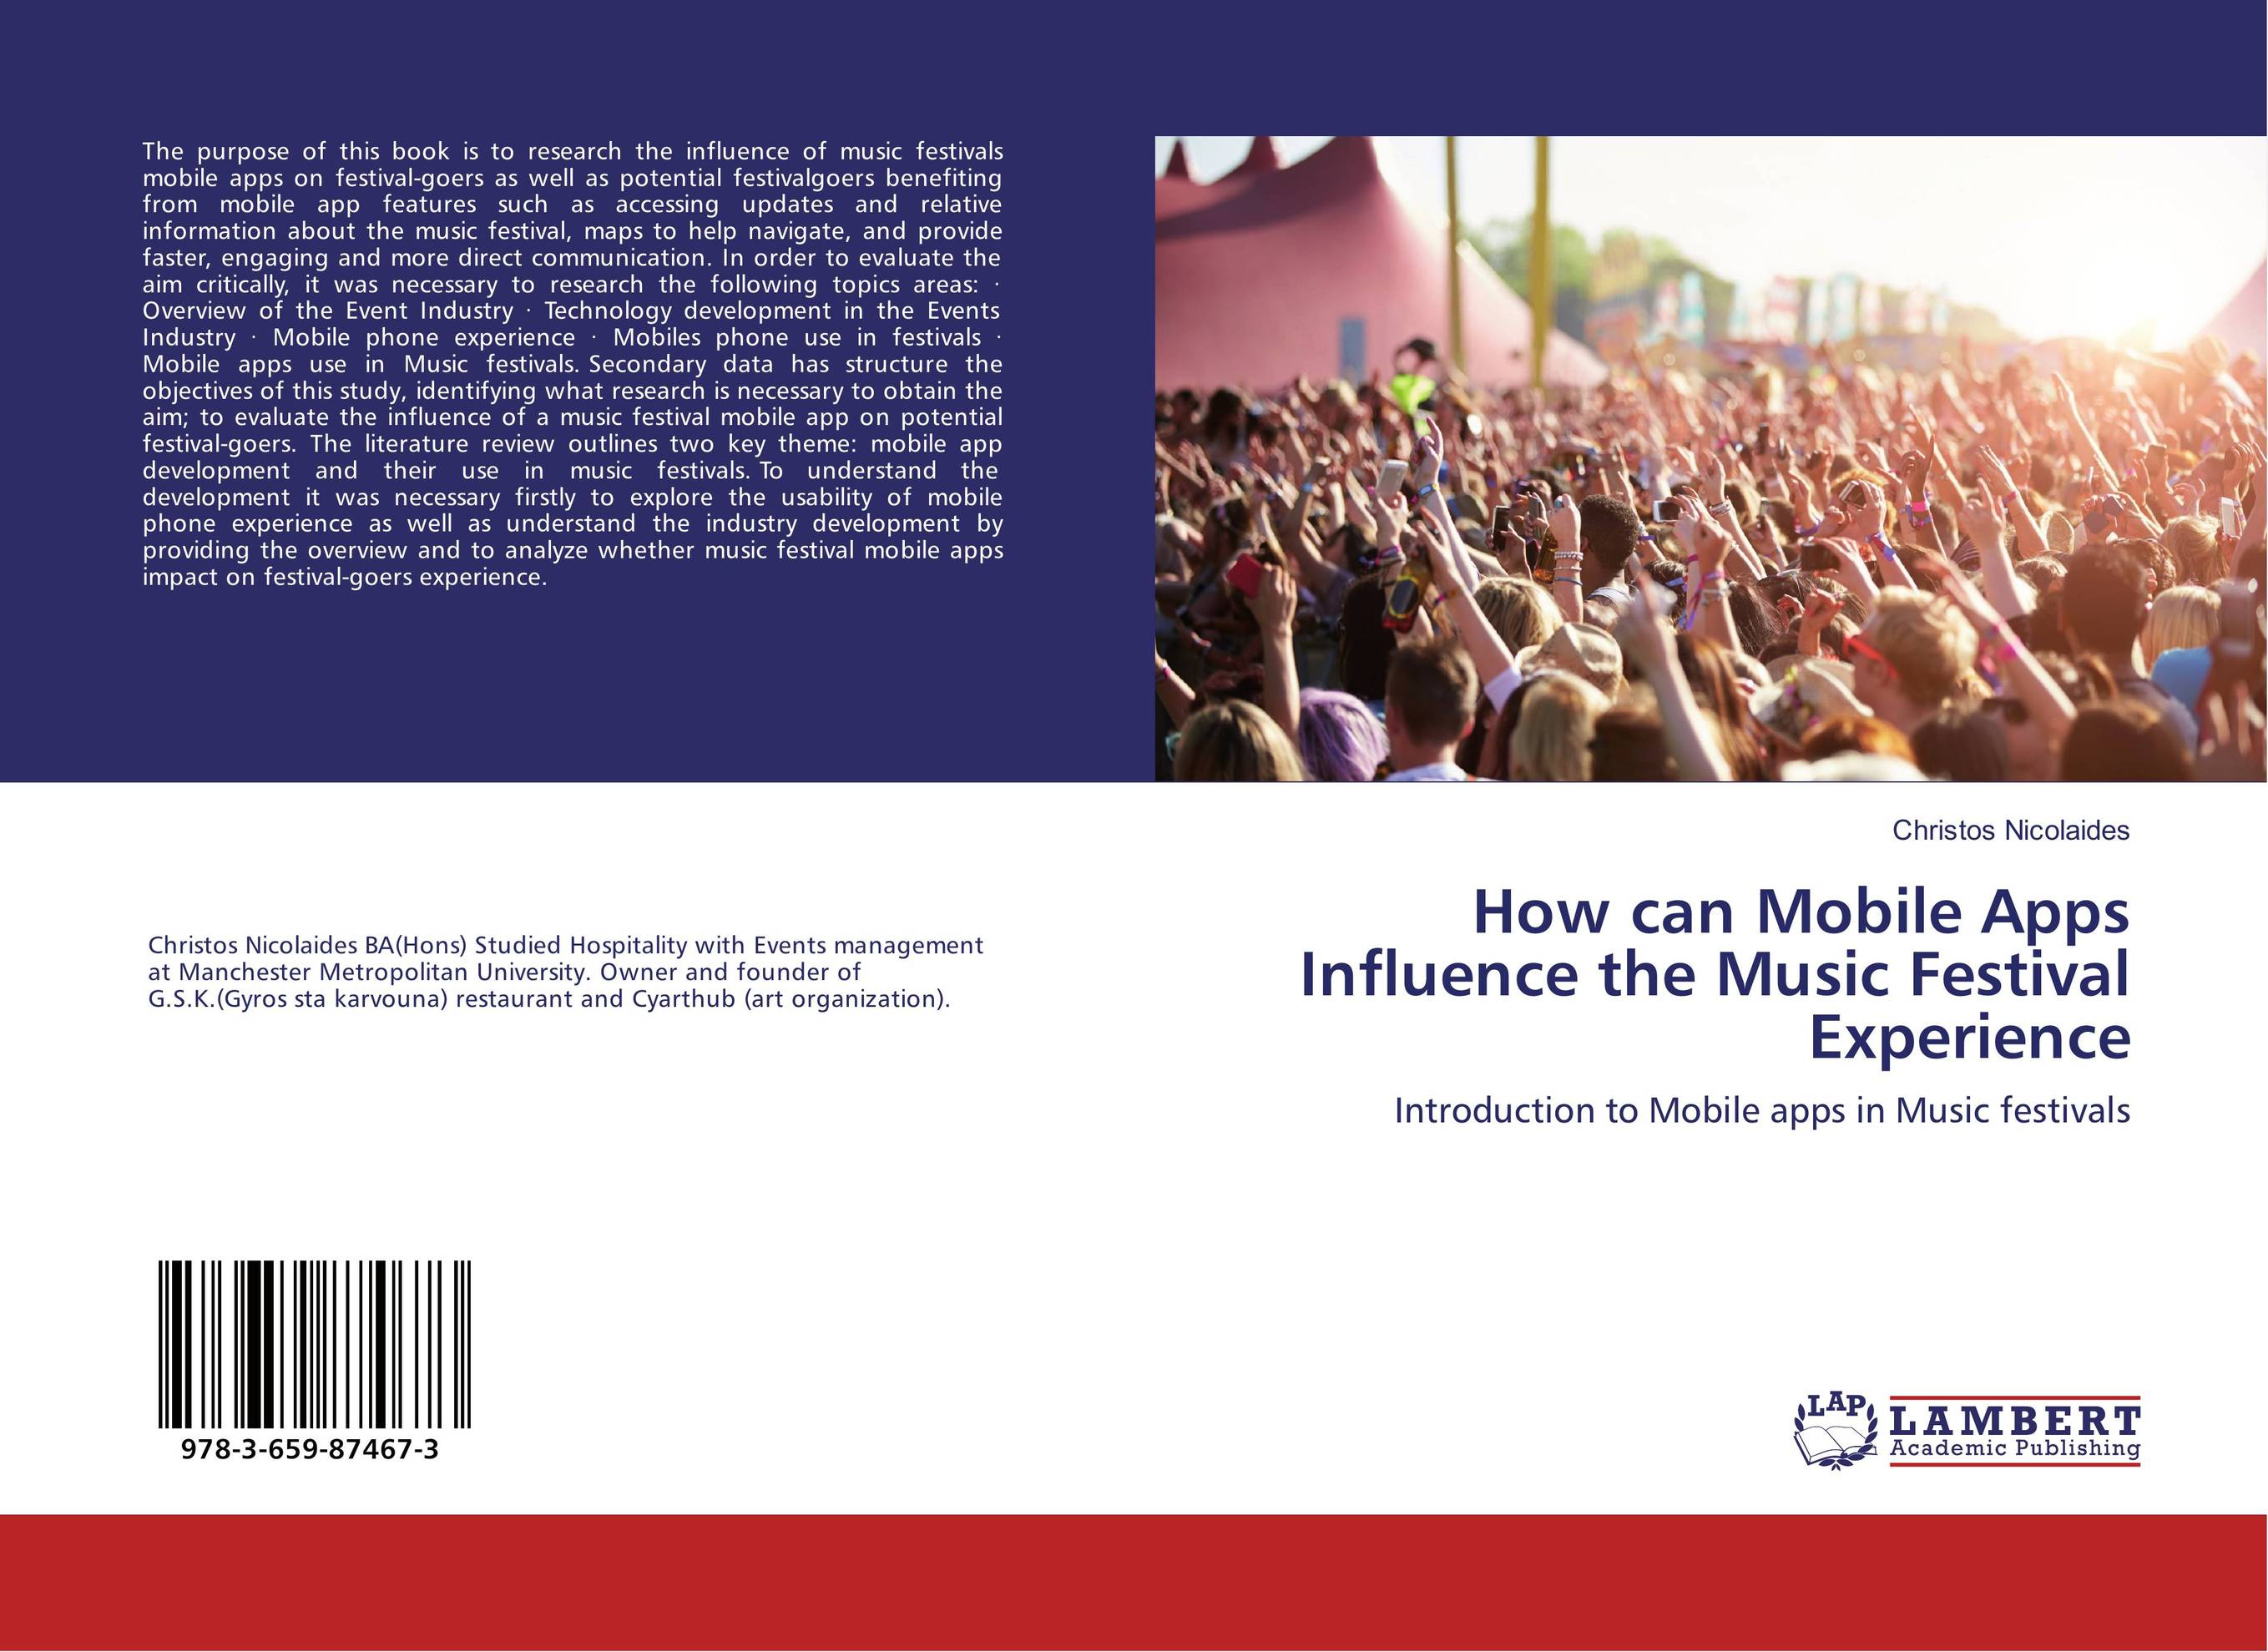 How can Mobile Apps Influence the Music Festival Experience